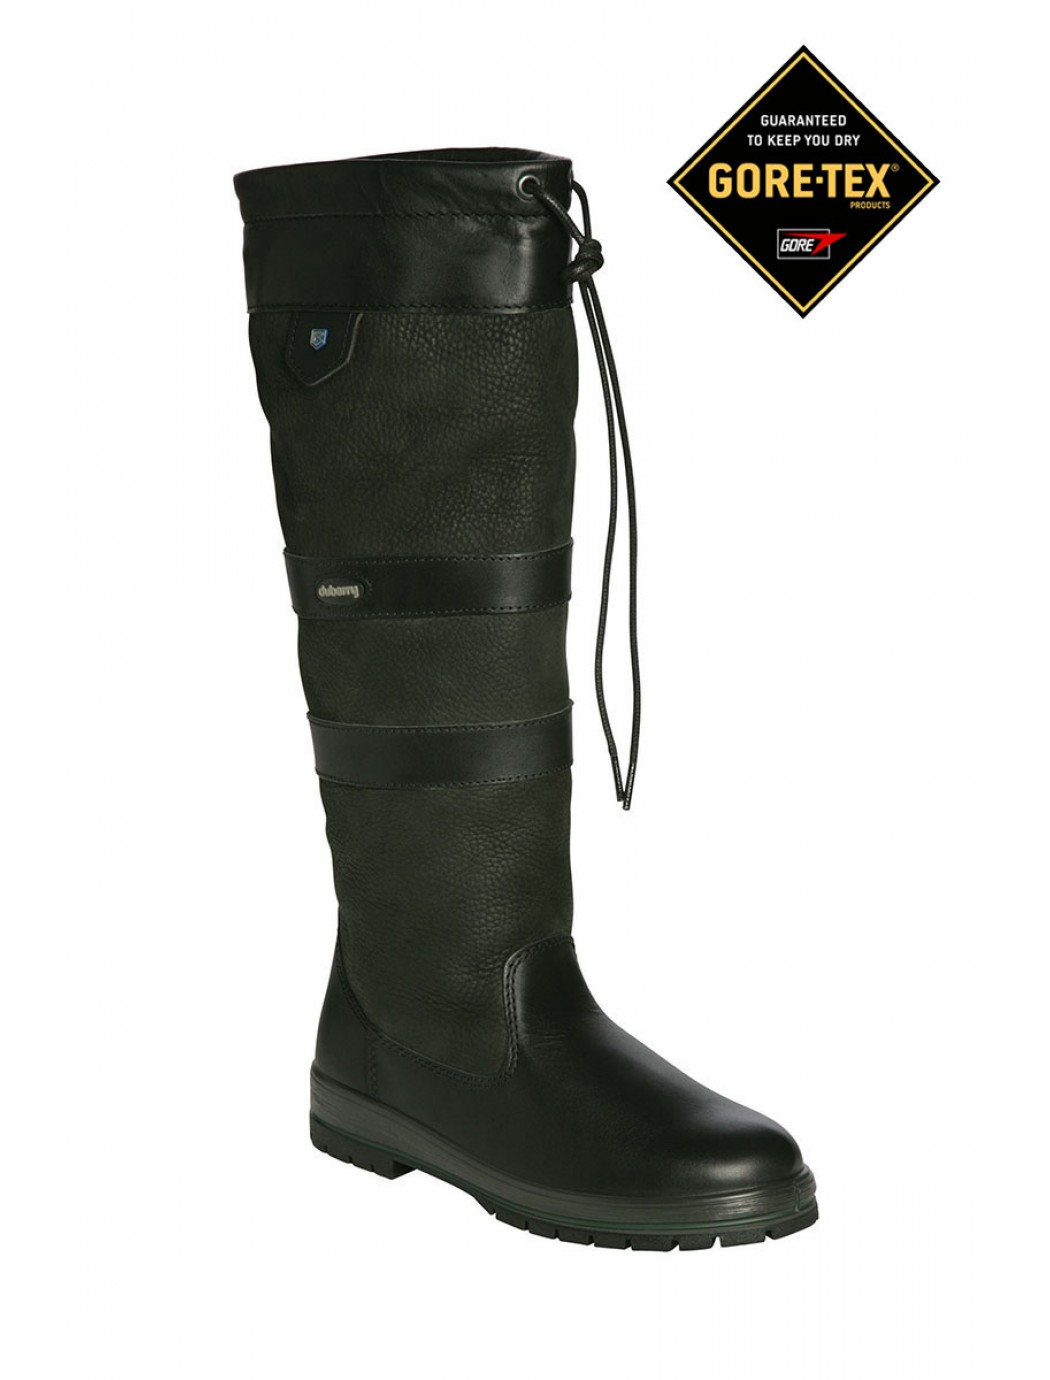 galway-country-boots-black 1